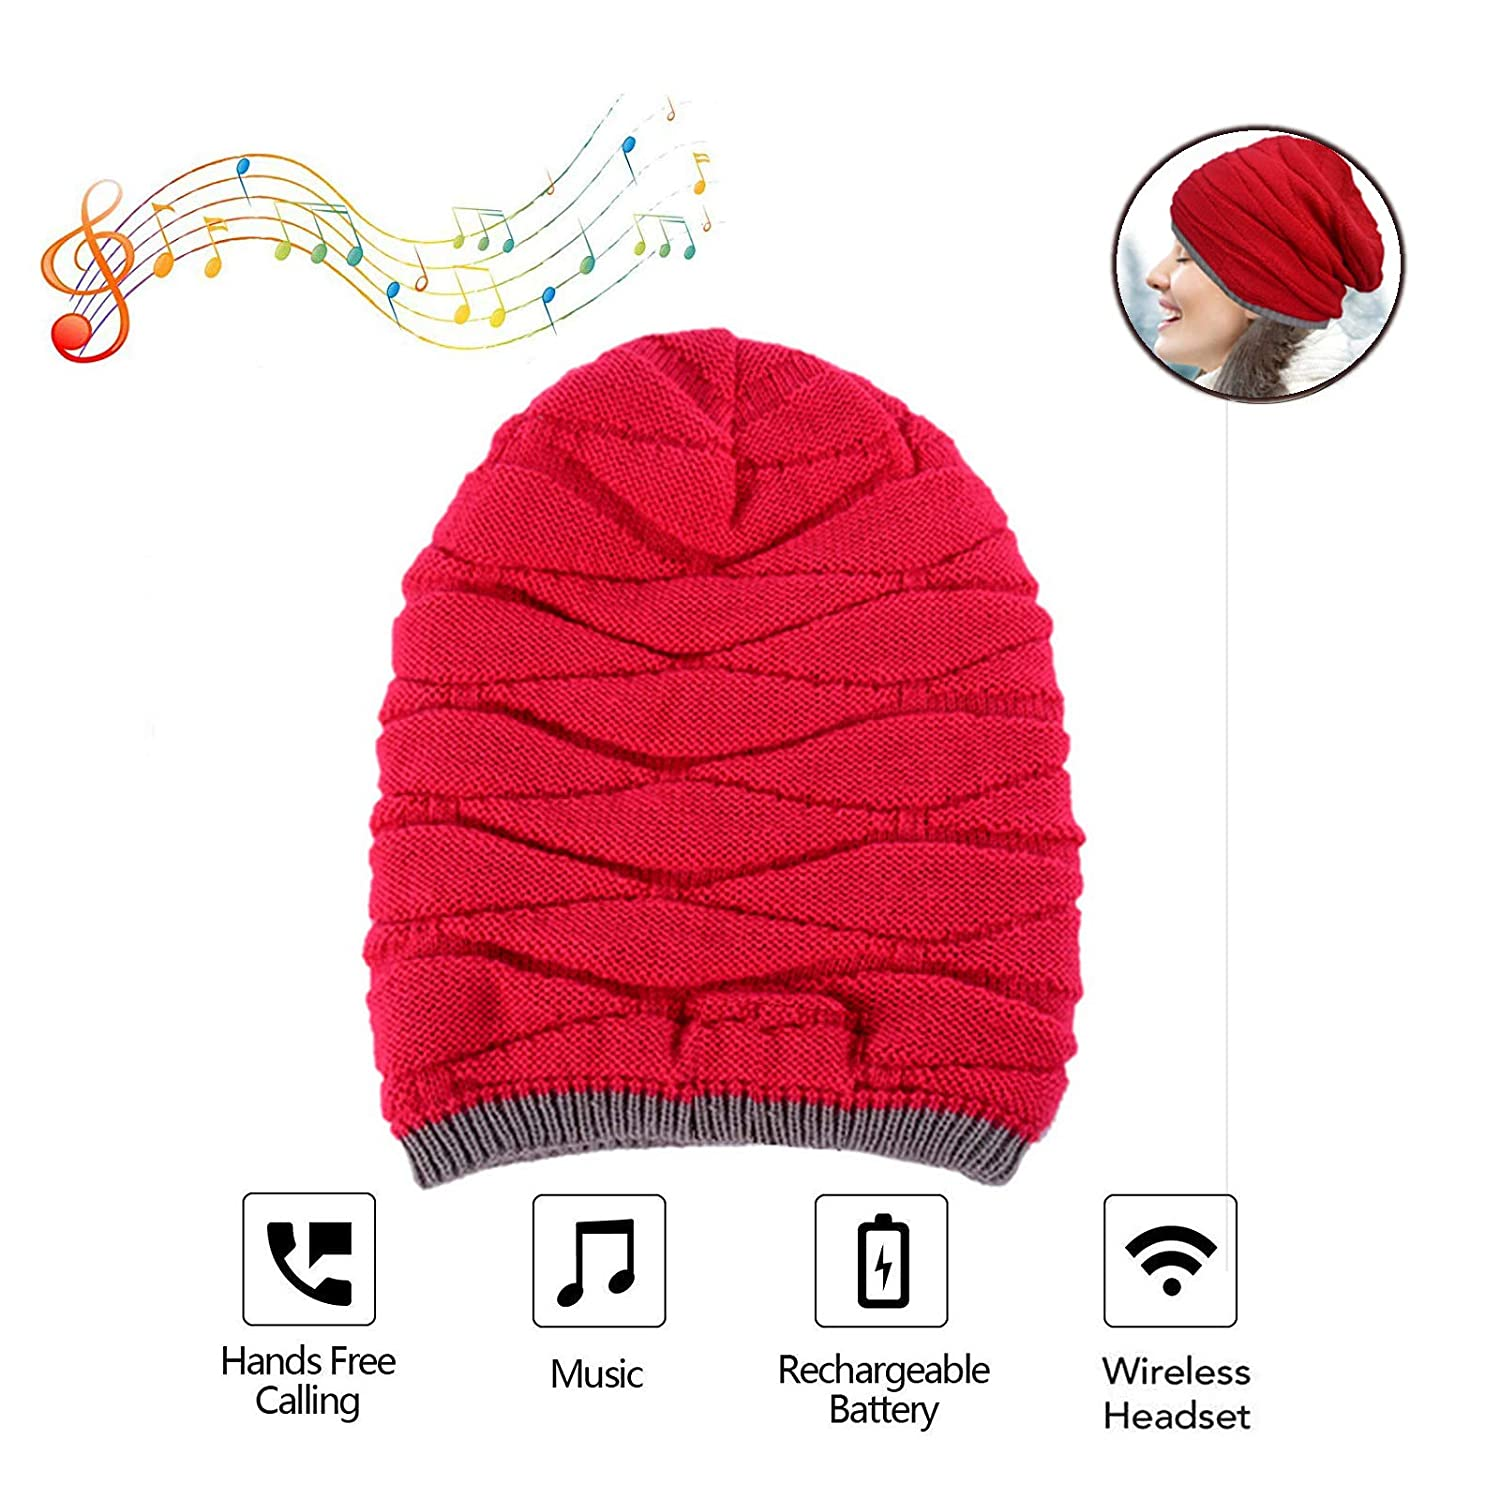 Jeystar Bluetooth Beanie Hat Stereo Speaker Wireless Cap Unisex Knit Cellphones Headset Music Hands Free Phone Call Answer Fitness Exercise Sports Outdoor for Birthday Festival Christmas